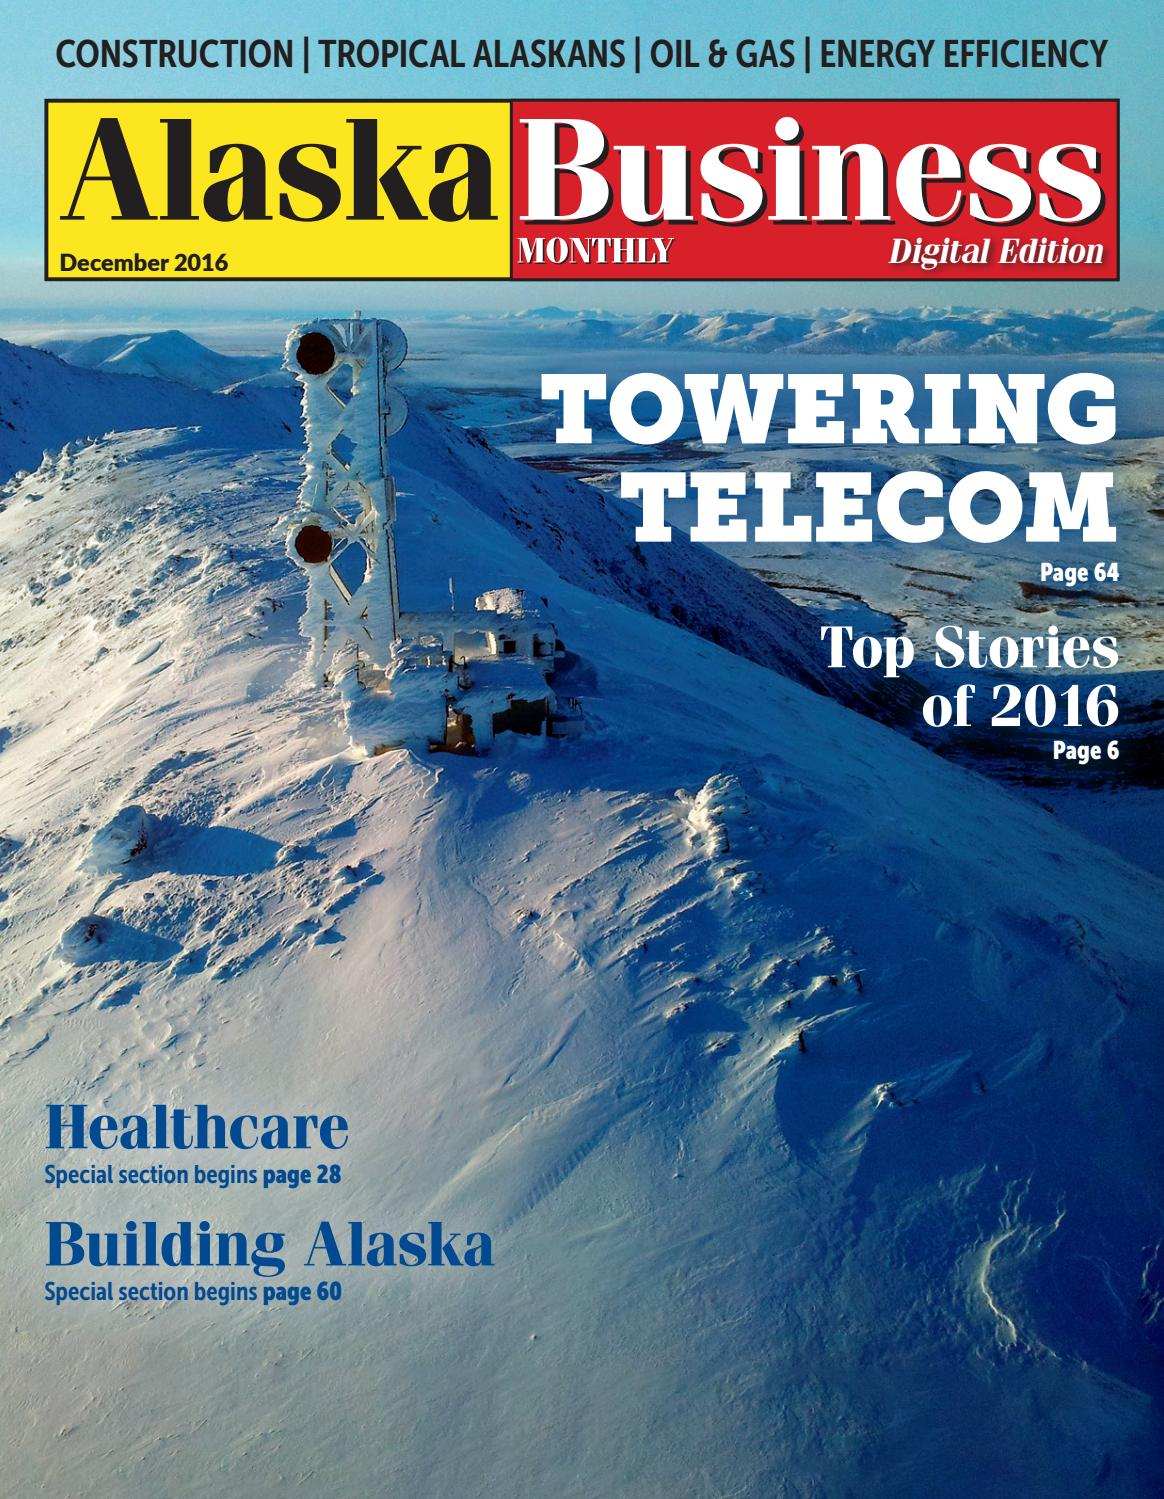 Alaska Business Monthly December 2016 by Alaska Business - issuu